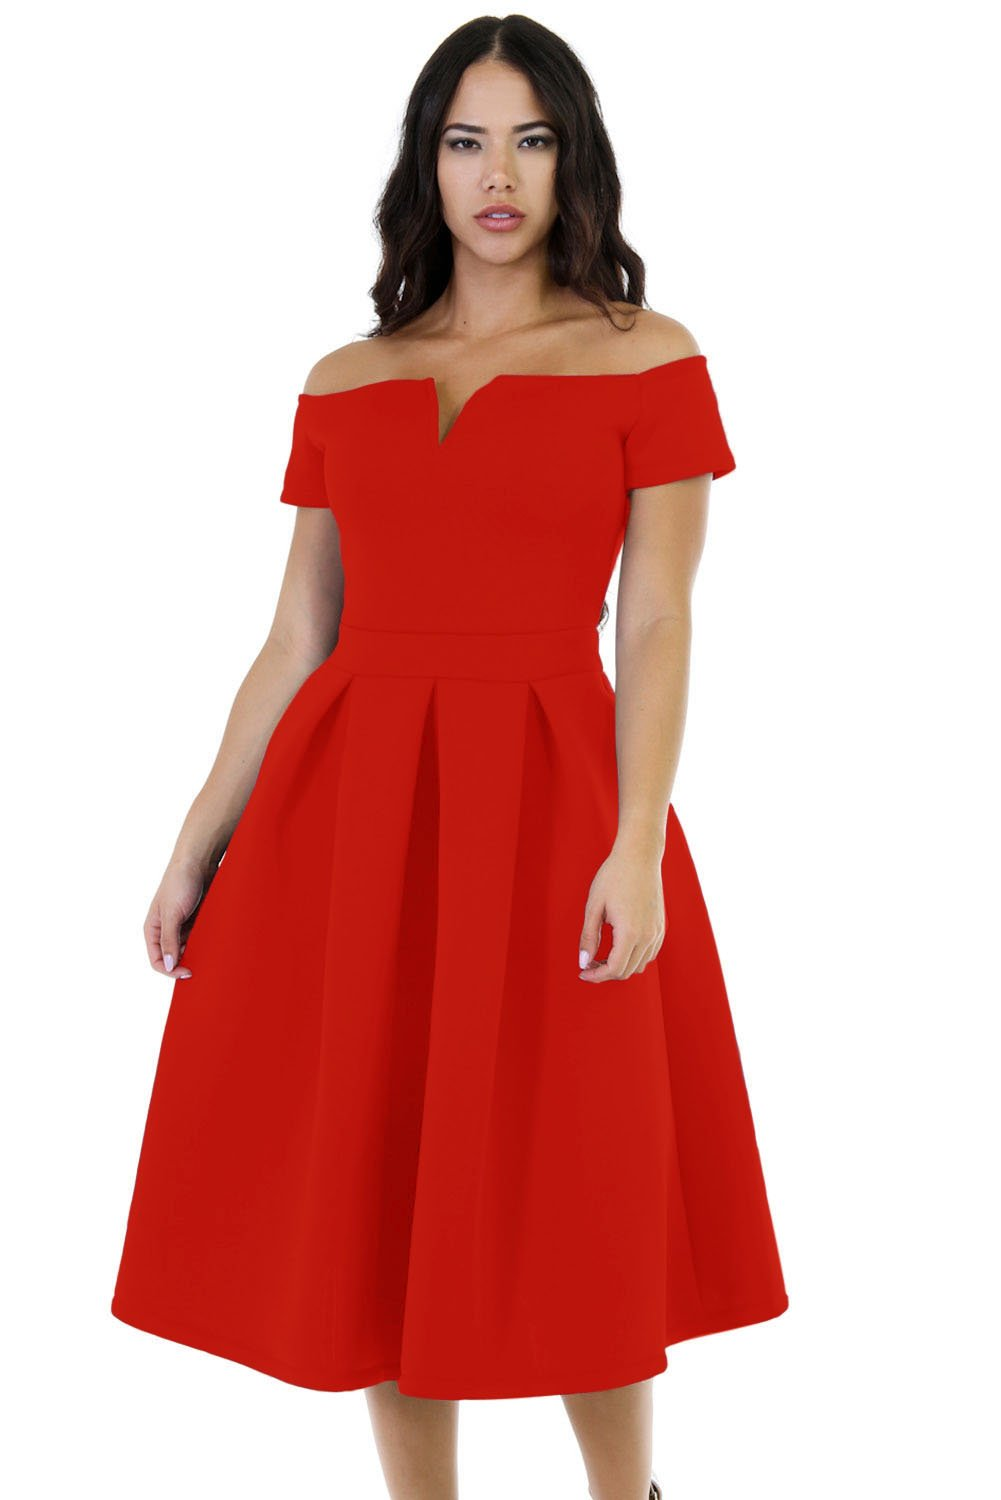 Lalagen Women's Vintage 1950s Party Cocktail Wedding Swing Midi Dress Red XL